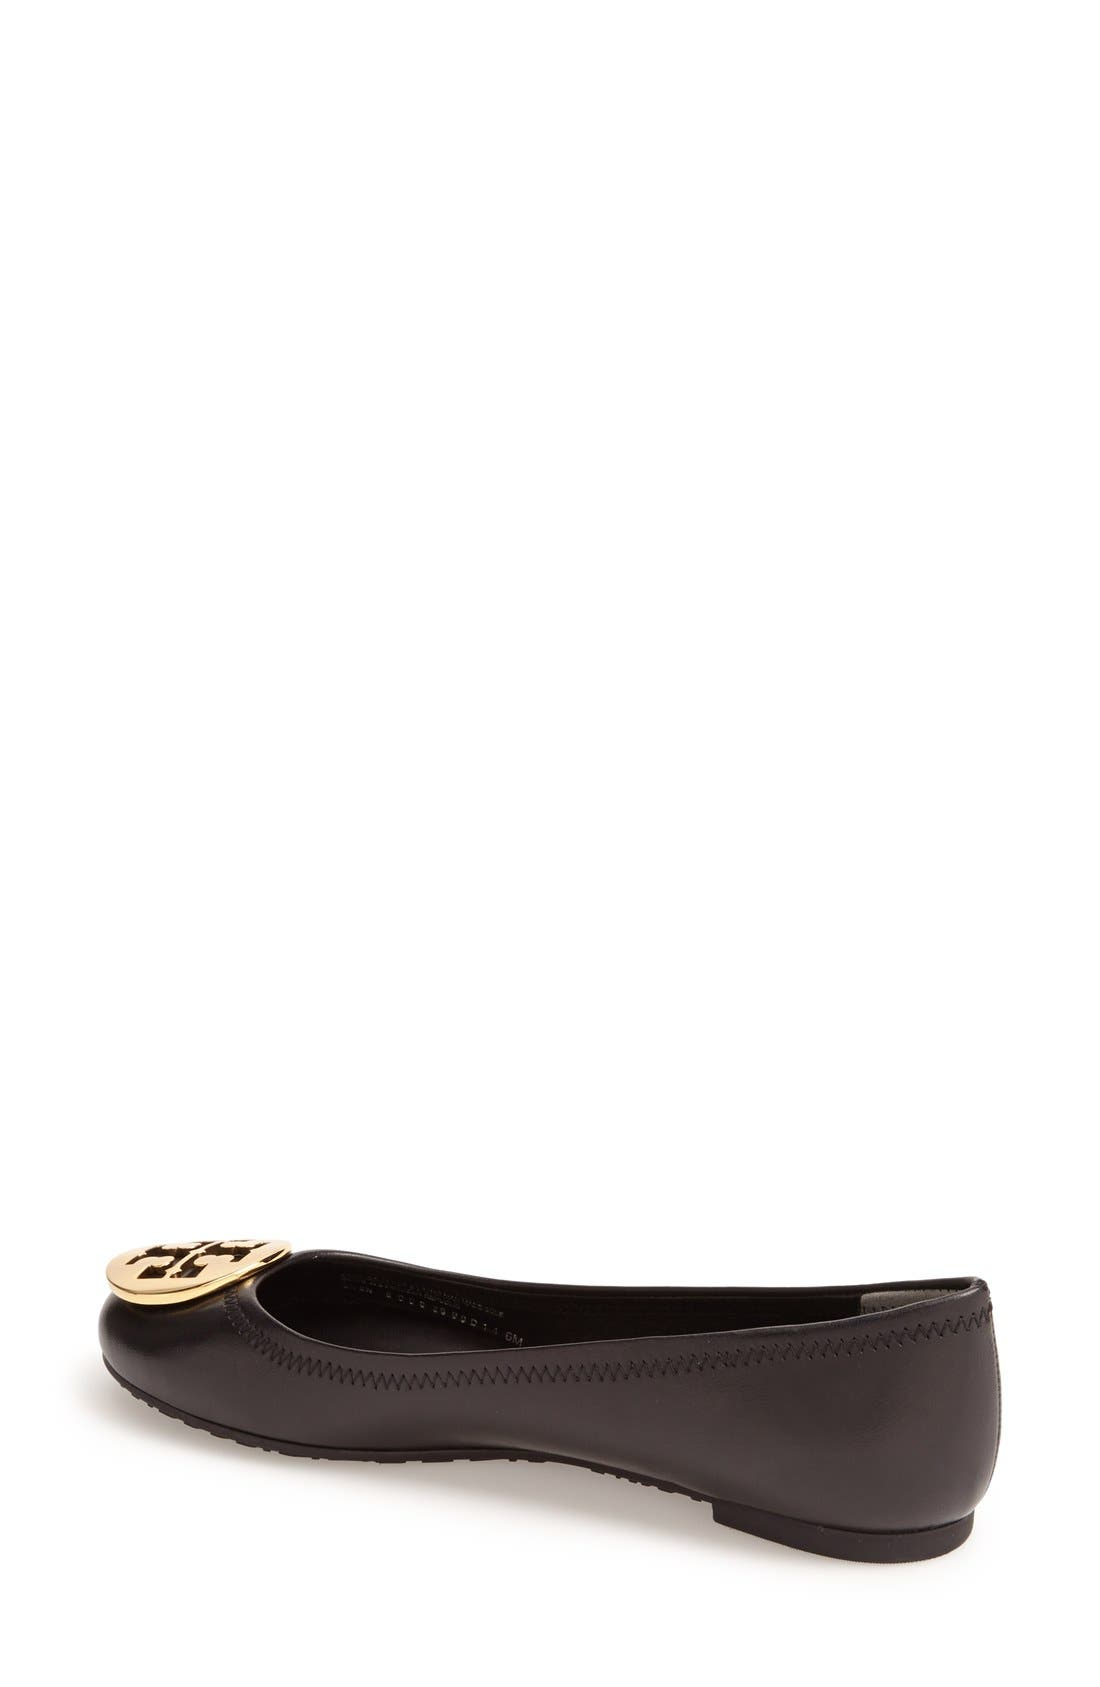 Alternate Image 2  - Tory Burch 'Reva' Ballerina Flat (Women)